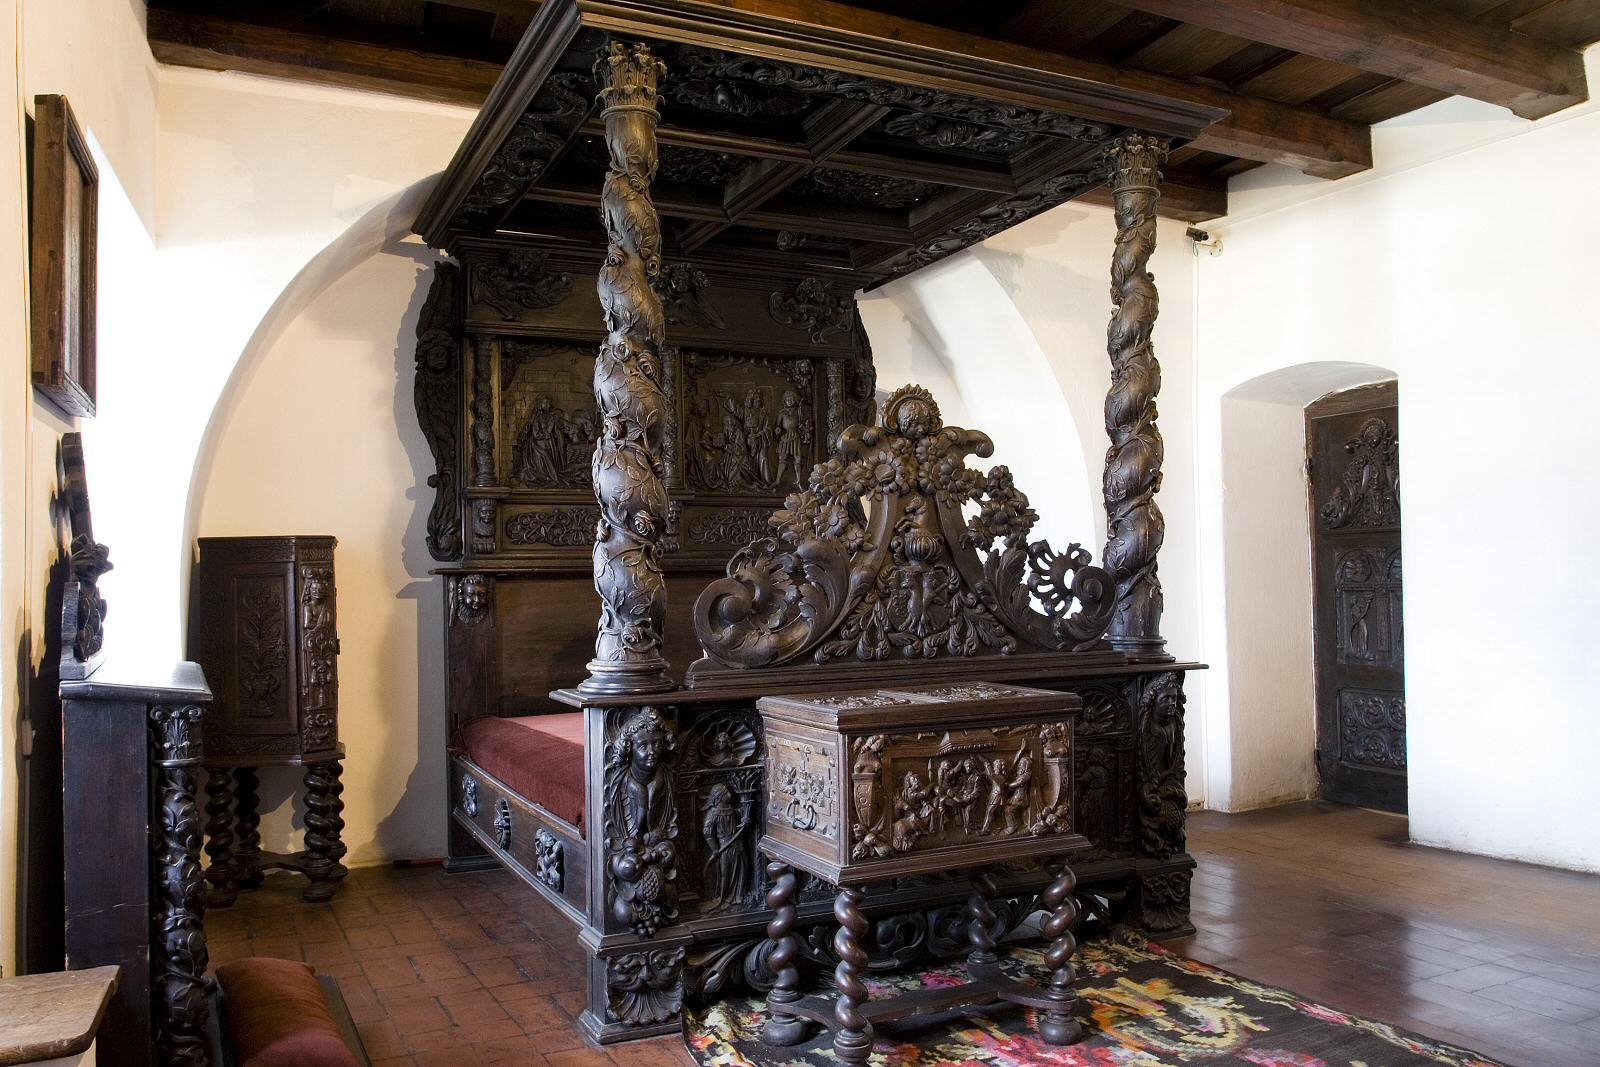 This bed is one of the most impressive furniture pieces in the entire castle